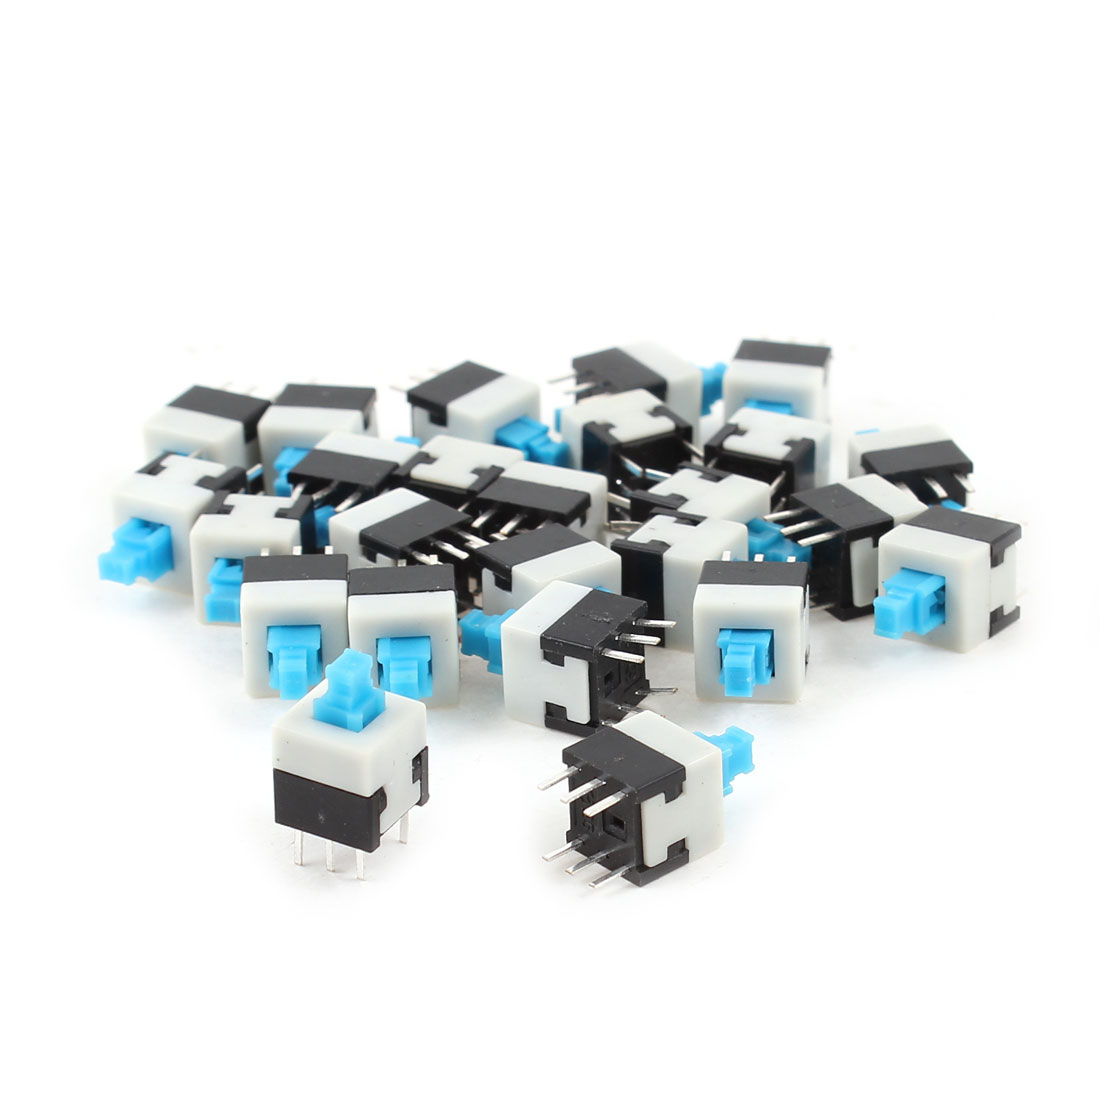 25Pcs 6 Pin 8.5mmx8.5mm Self-locking DPDT Mini Computer Reset Push Button Switch